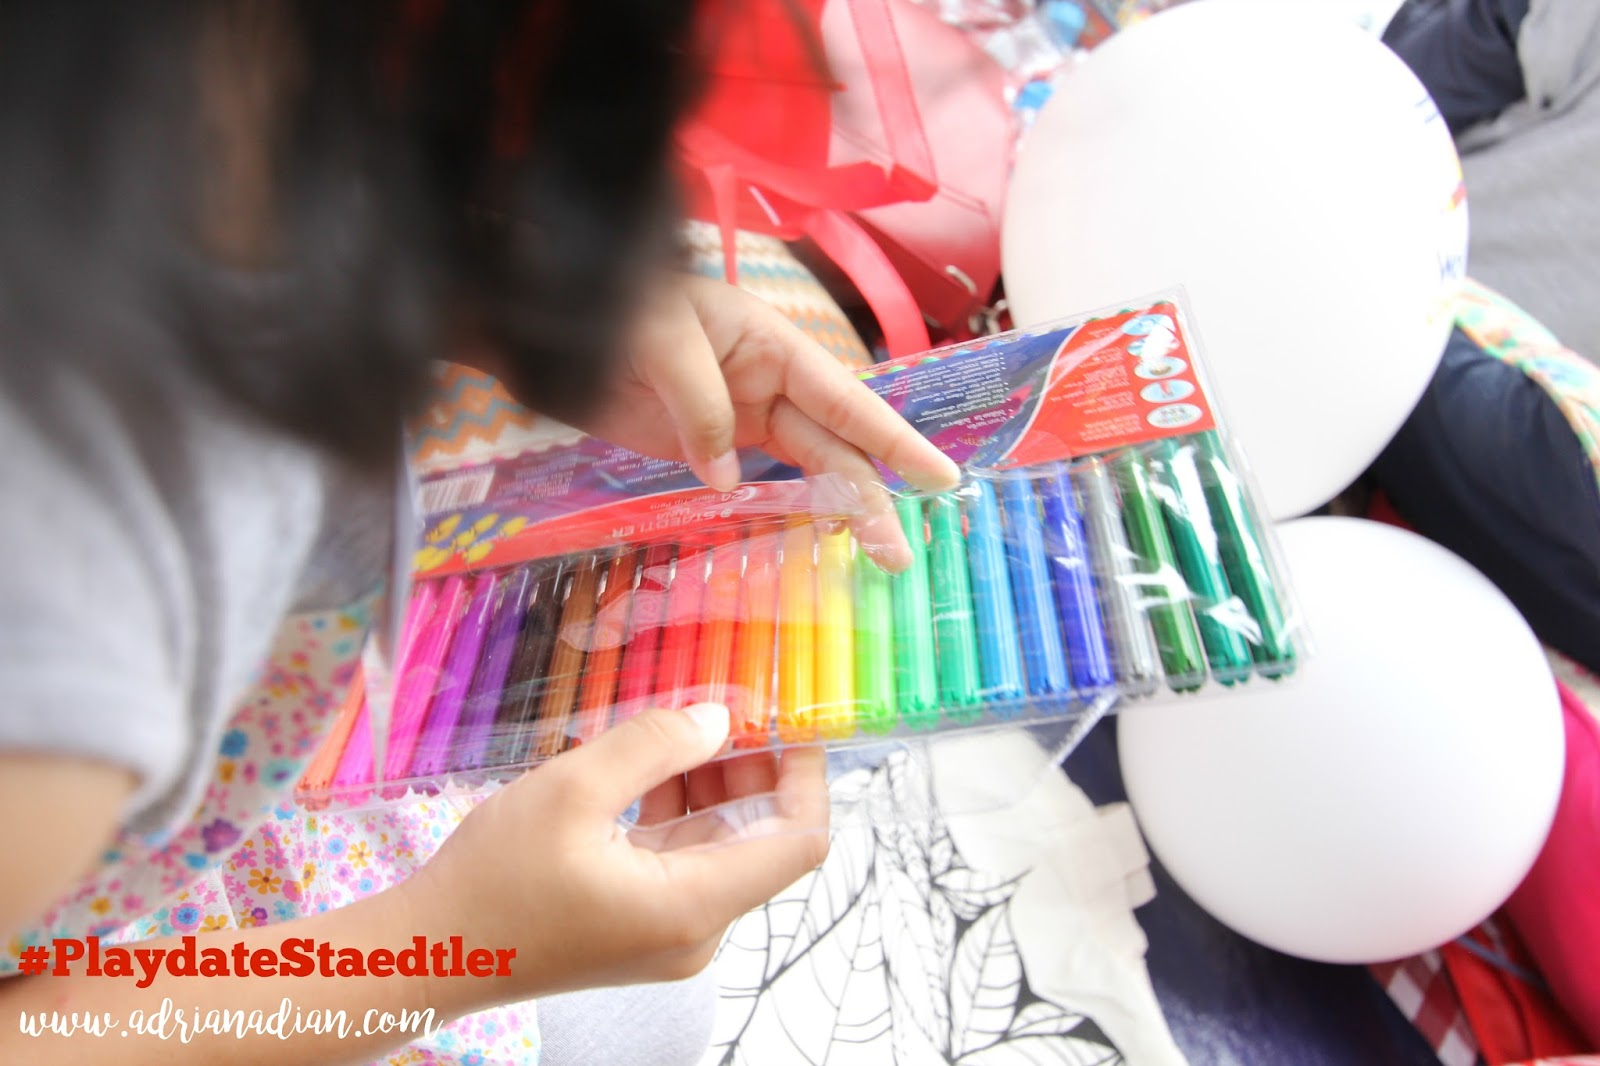 #PlaydateStaedtler Fun Colouring